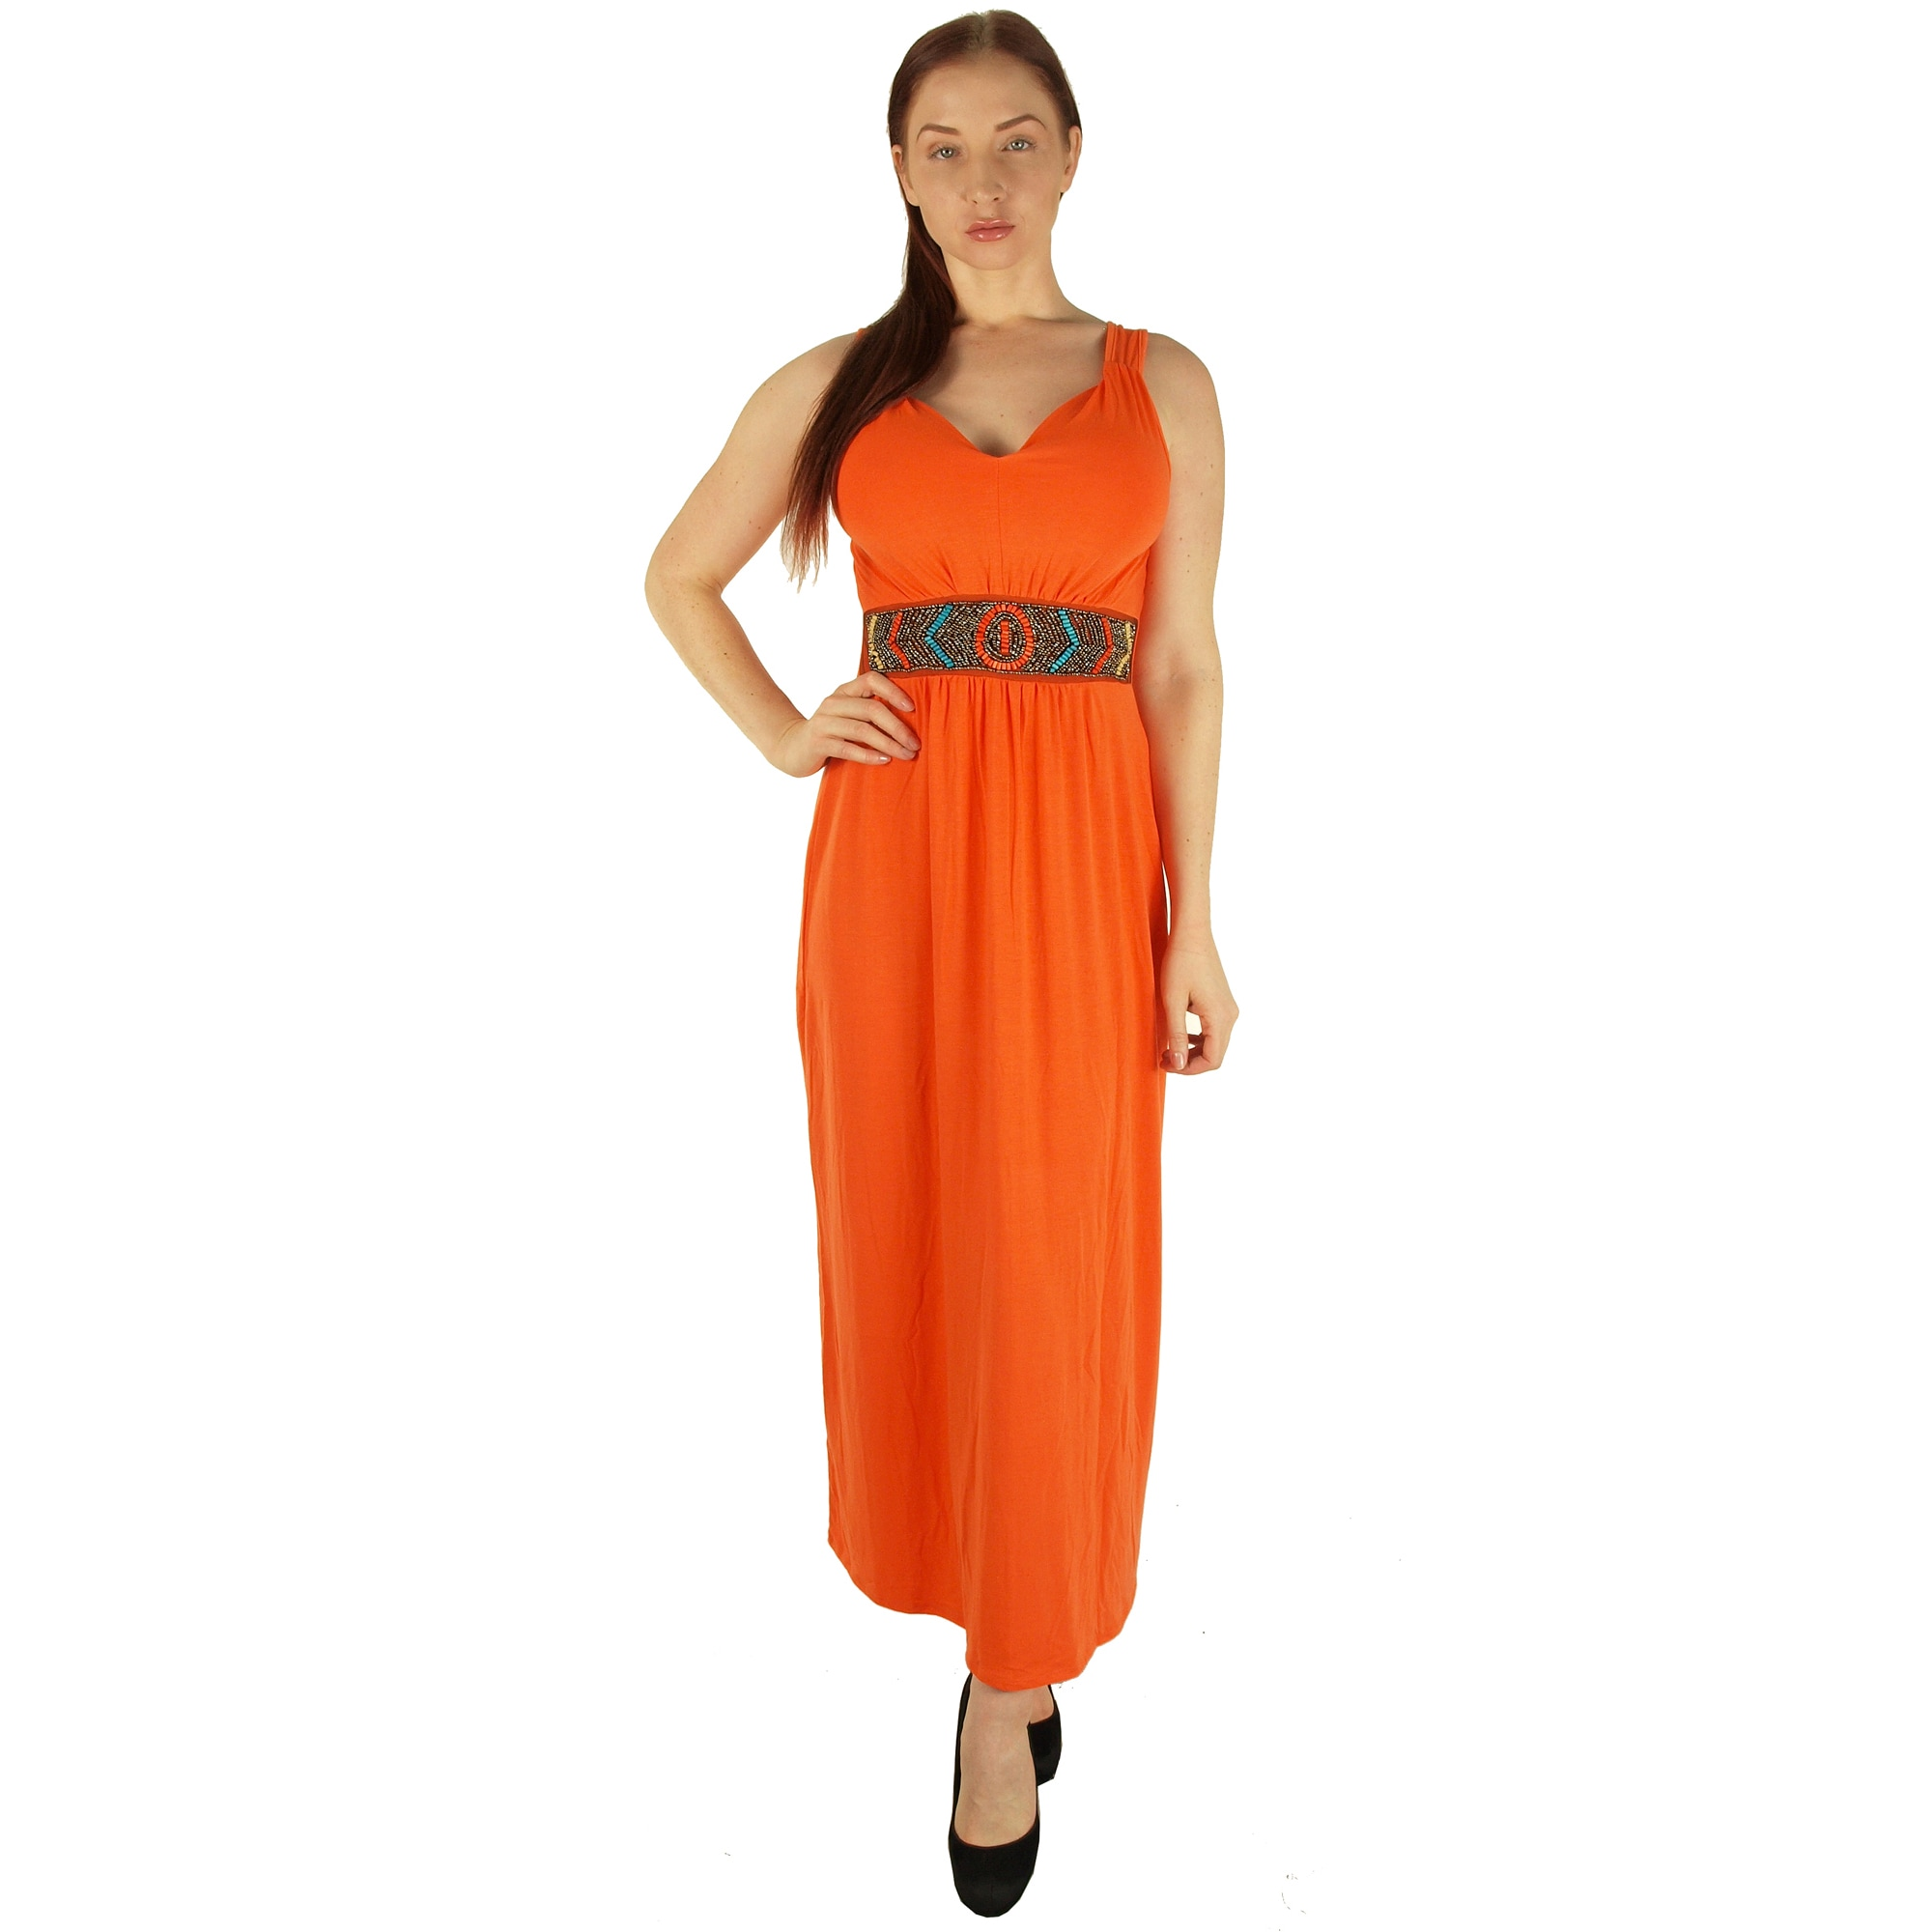 fff986411e Shop Special One Women s Orange Polyester Rayon Spandex Super Plus Size  Maxi Dress With Beaded Waist - Free Shipping On Orders Over  45 - Overstock  - ...